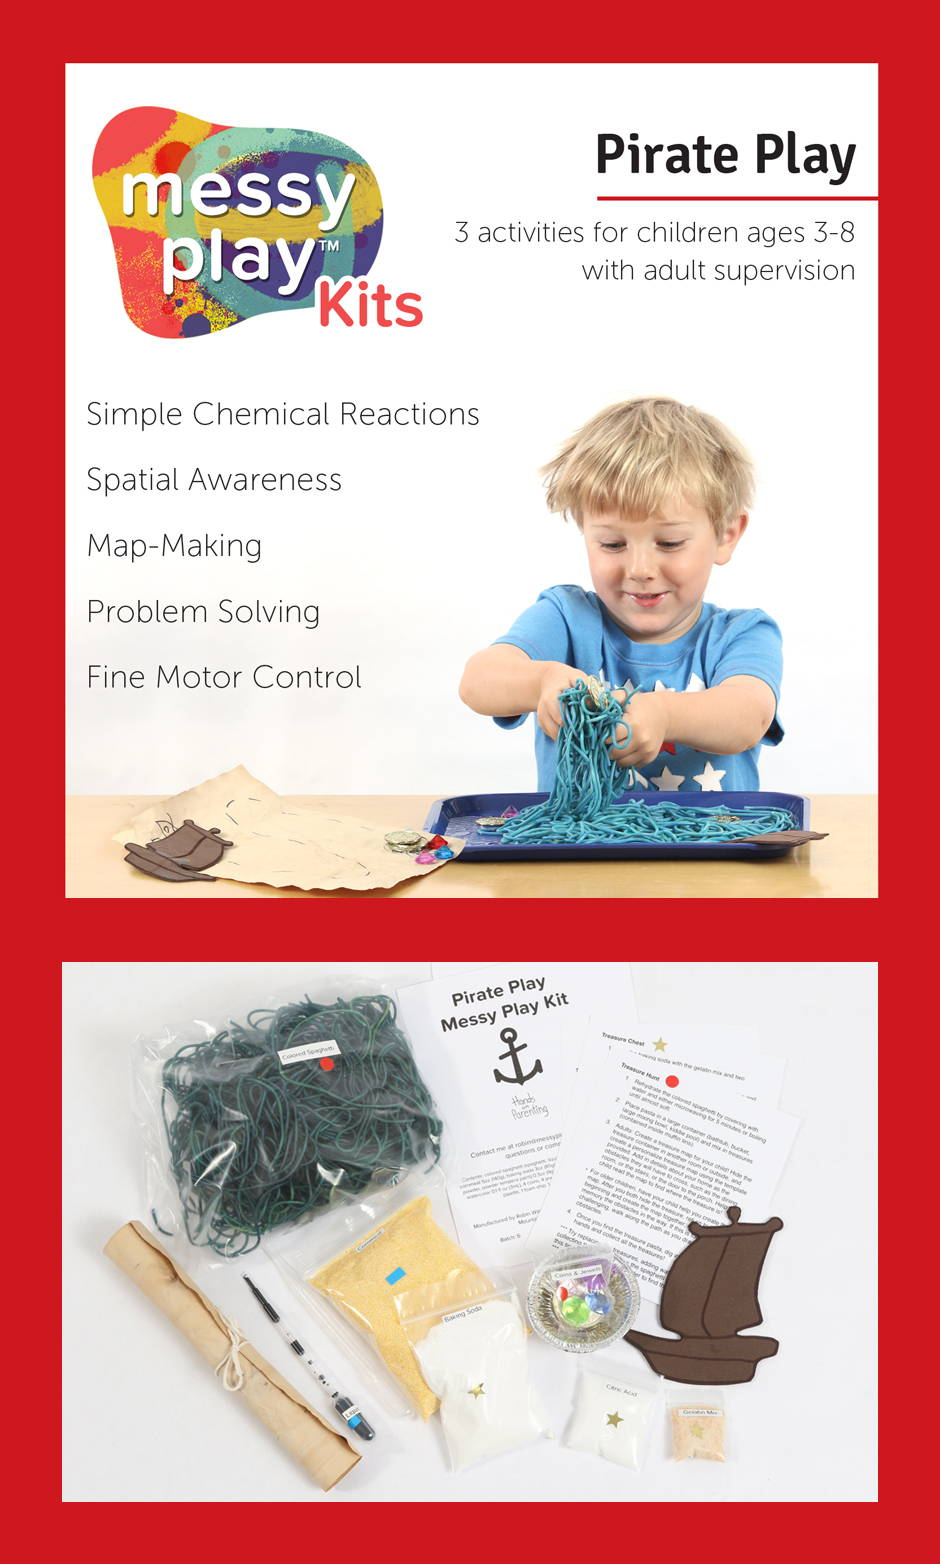 Pirate Play Messy Play Kit contains 3 activities that teach simple chemical reaction, spatial awareness, map-making, problem solving, and fine motor control